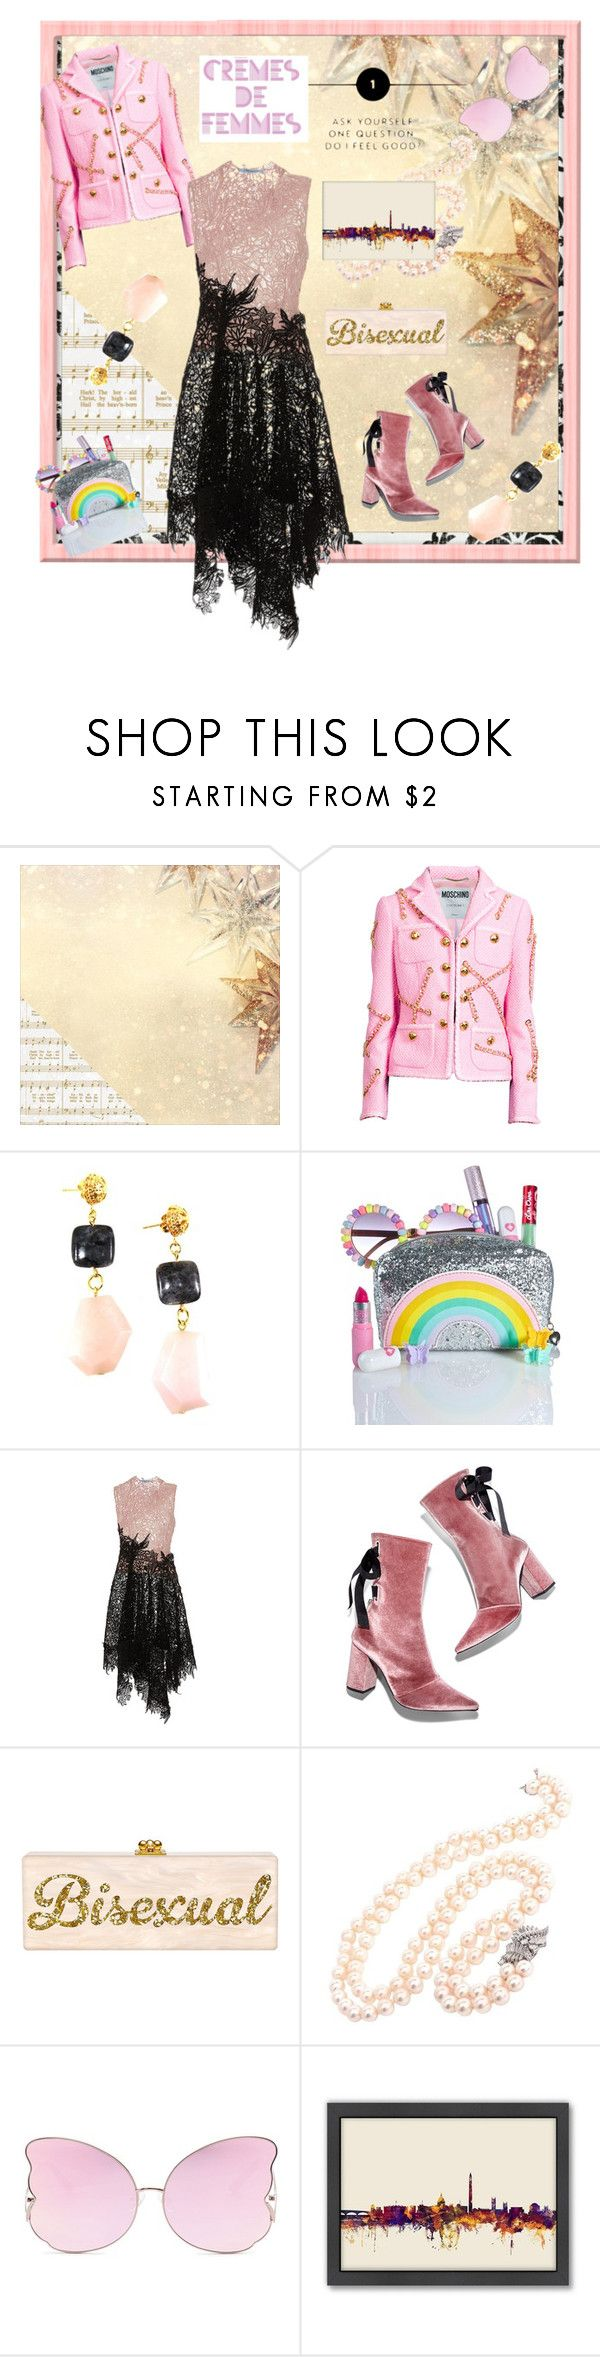 """Free Spirit"" by rita257 ❤ liked on Polyvore featuring Kaisercraft, Local Heroes, Blumarine, Robert Clergerie, Matthew Williamson and Americanflat"